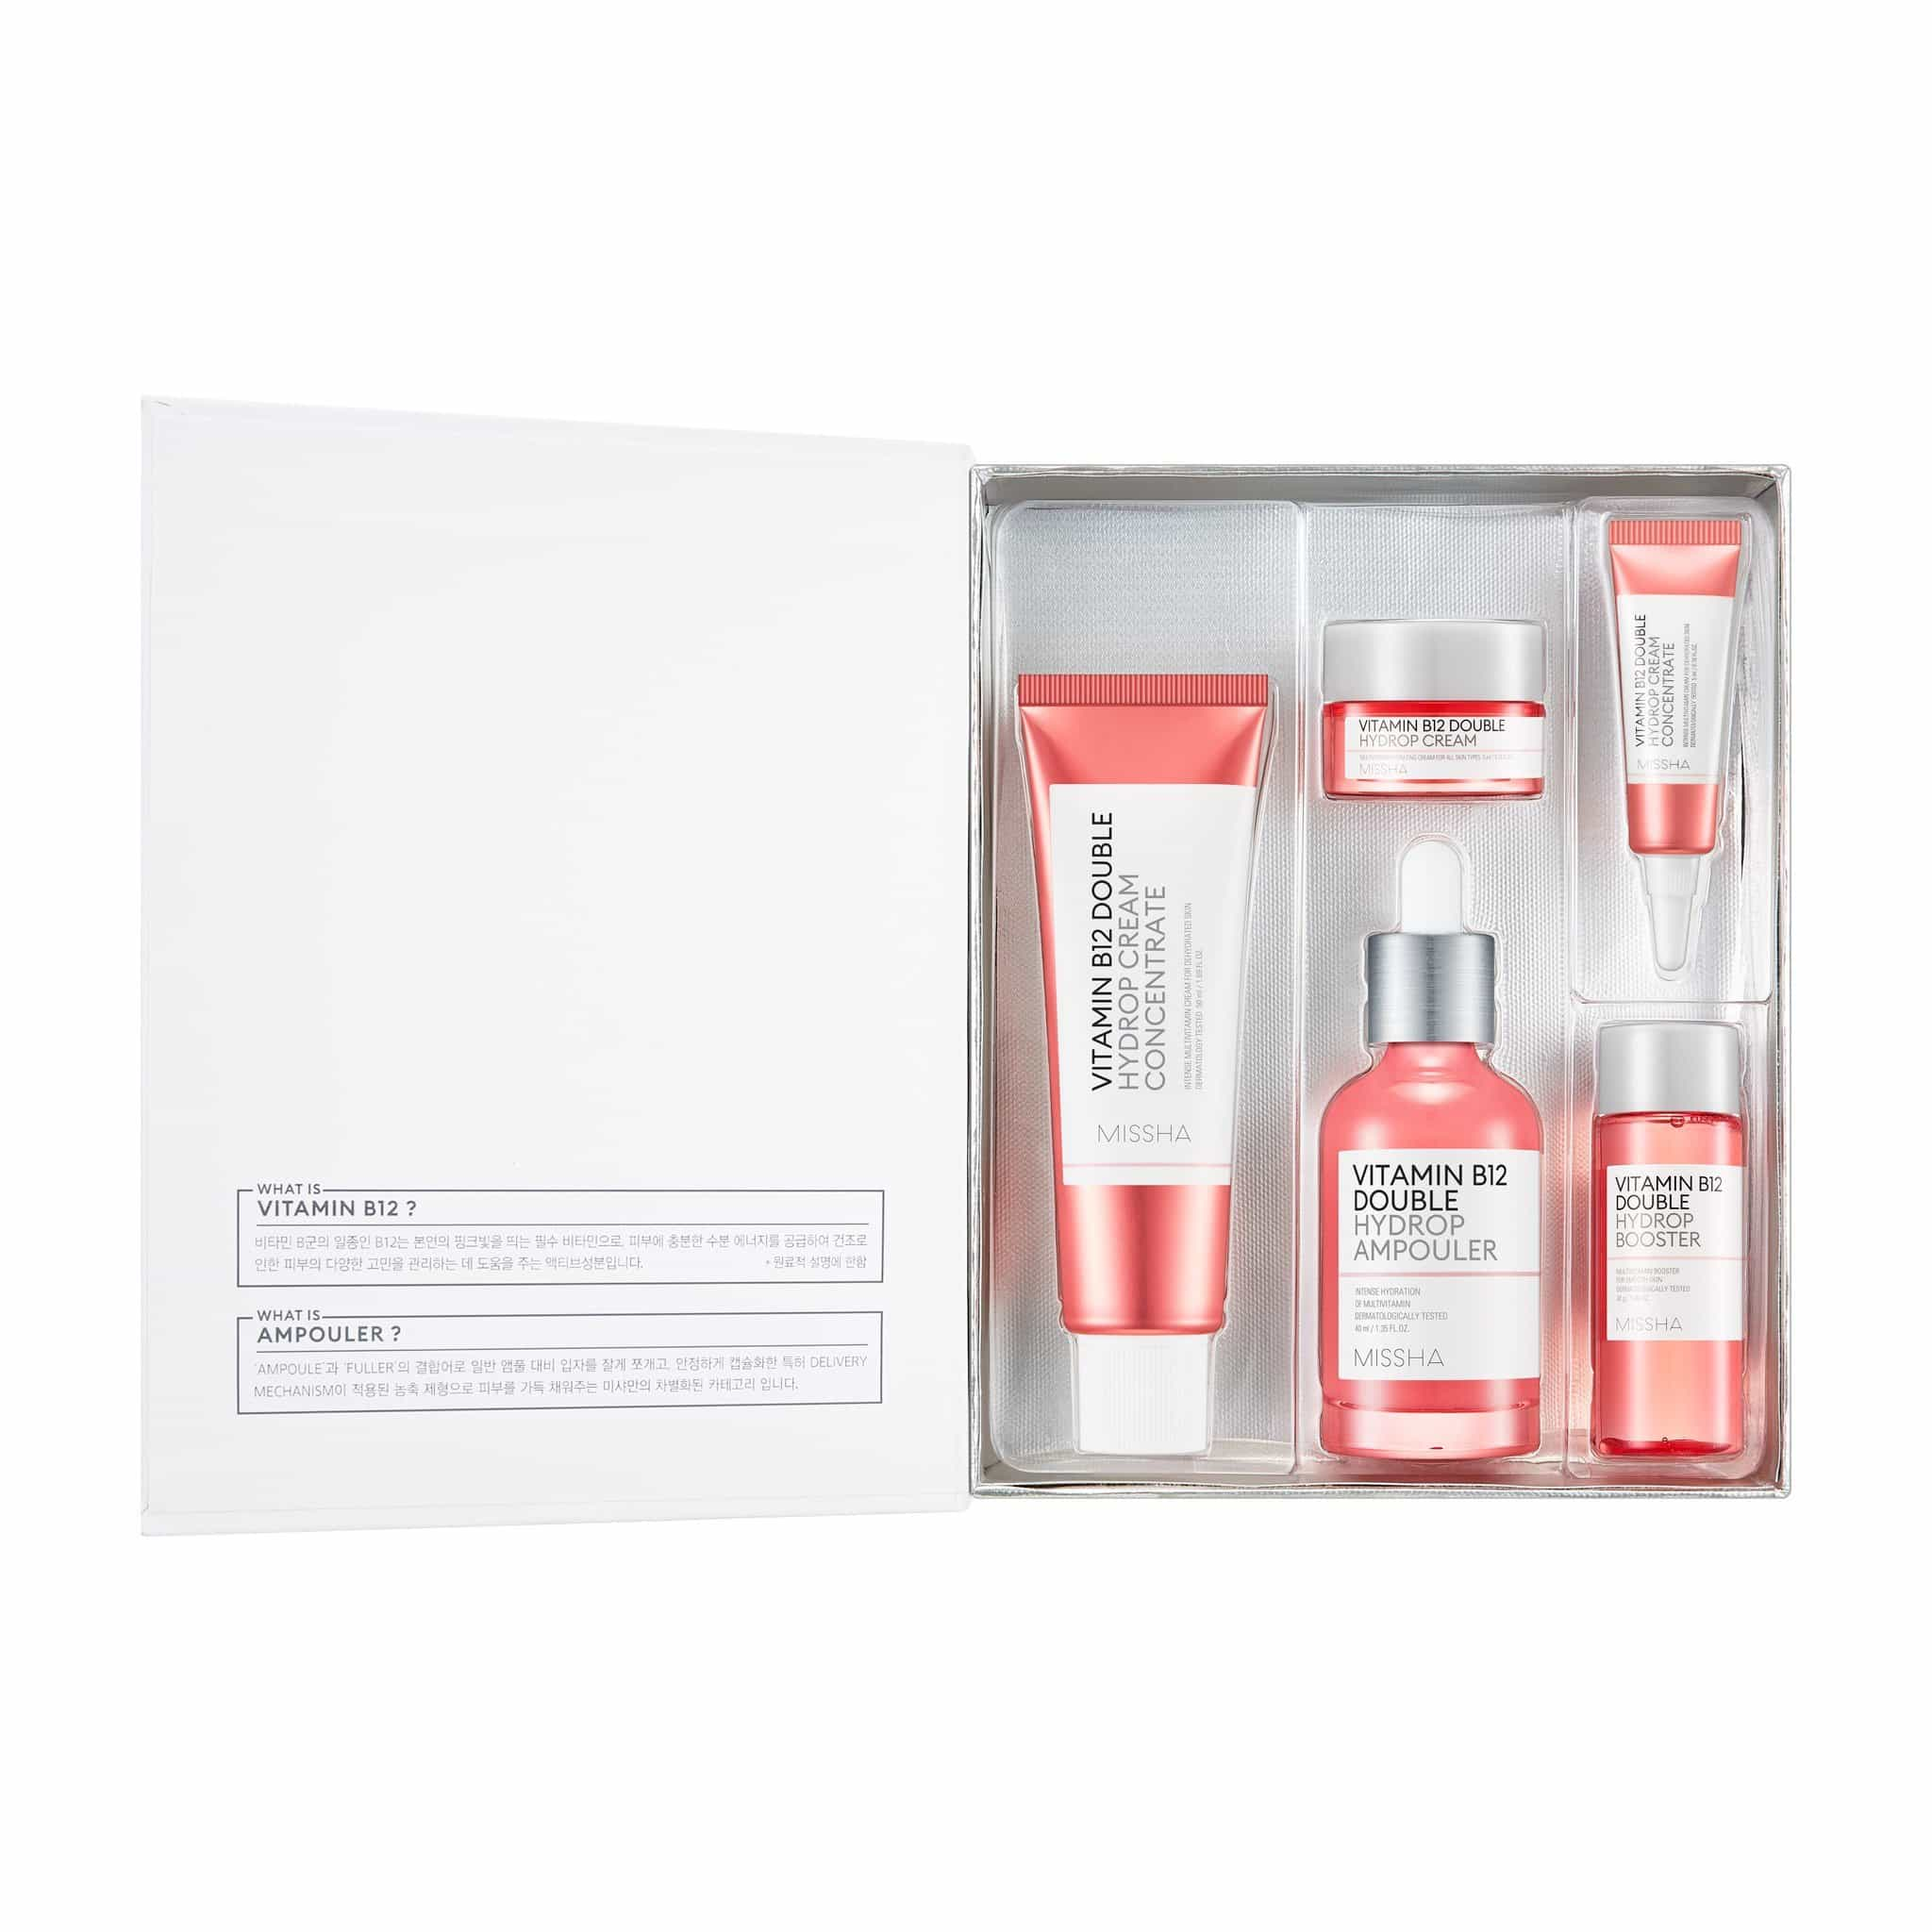 VITAMIN B12 DOUBLE HYDROP SET 2 - MISSHA